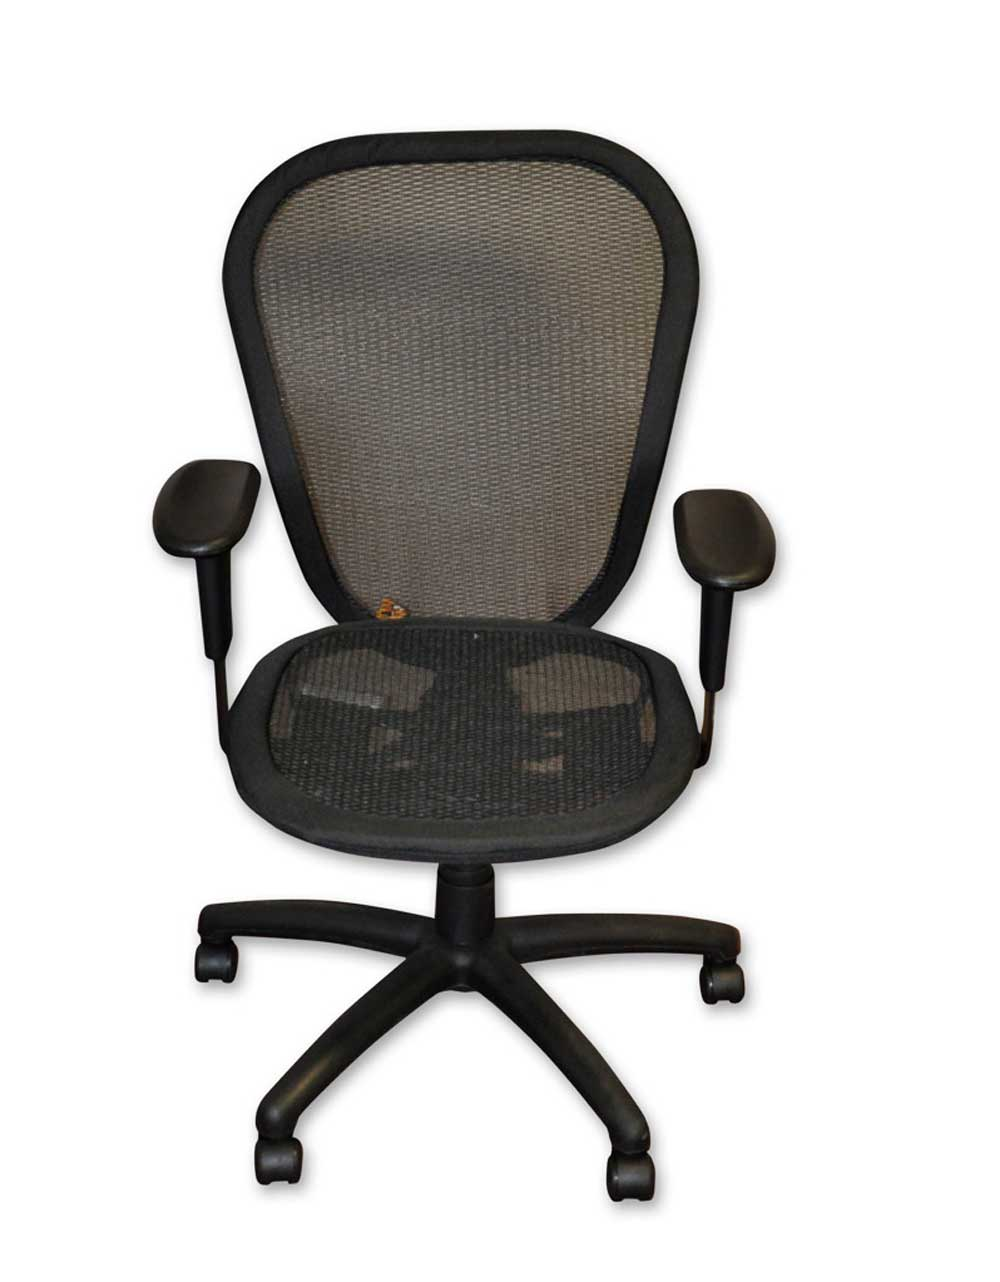 Five adjustments black ergonomic mesh chairs